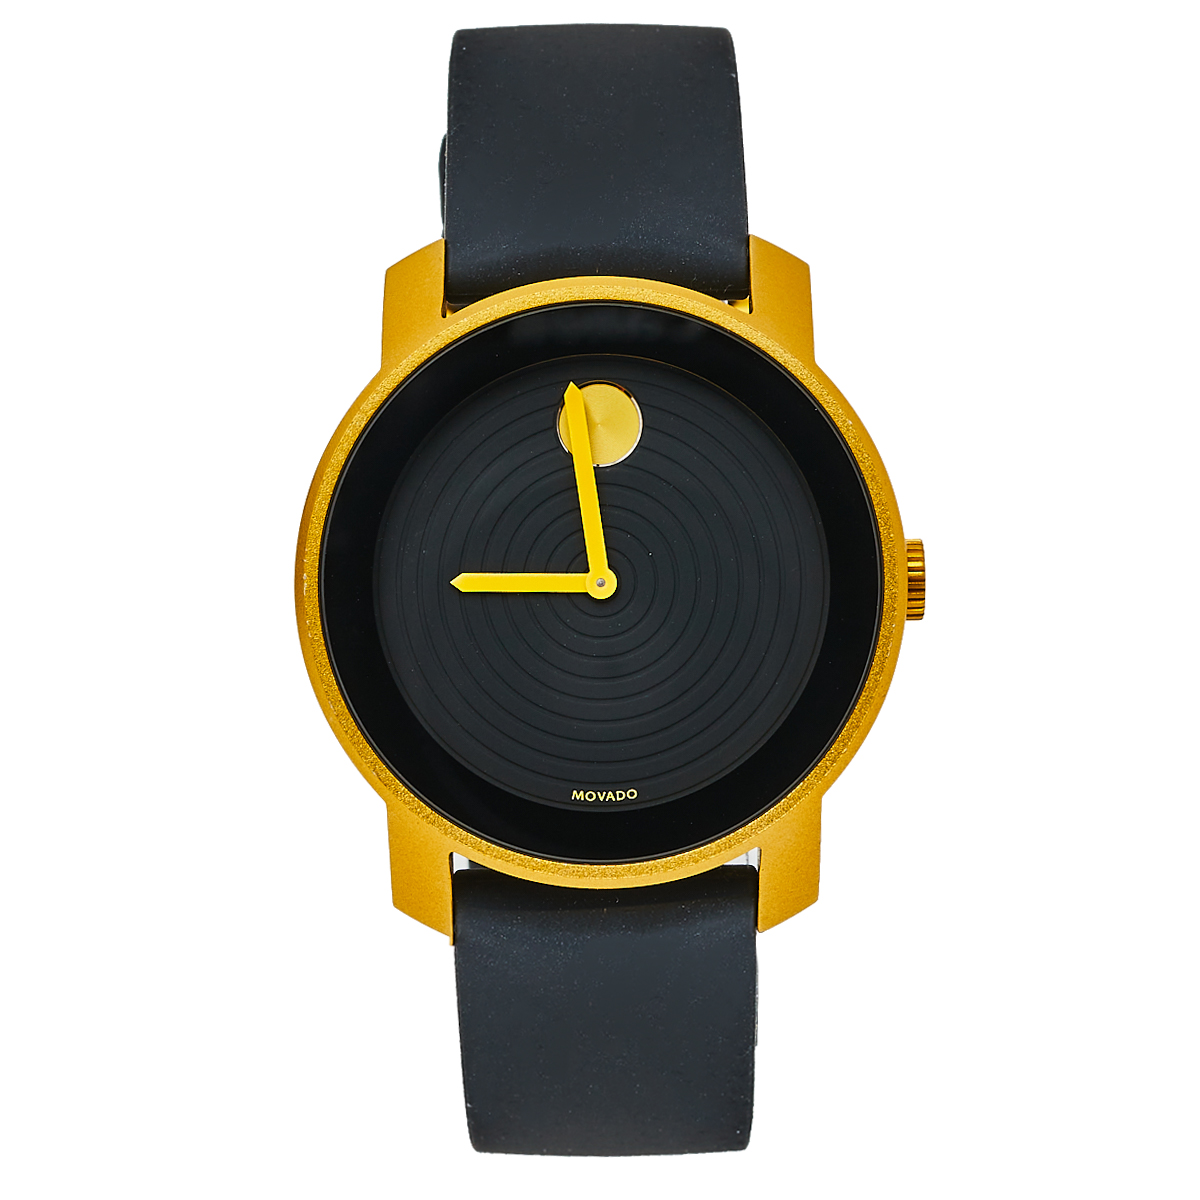 MOVADO BLACK YELLOW GOLD PVD COATED ALUMINIUM RUBBER BOLD MB.01.1.22.6073 MEN'S WRISTWATCH 44 MM